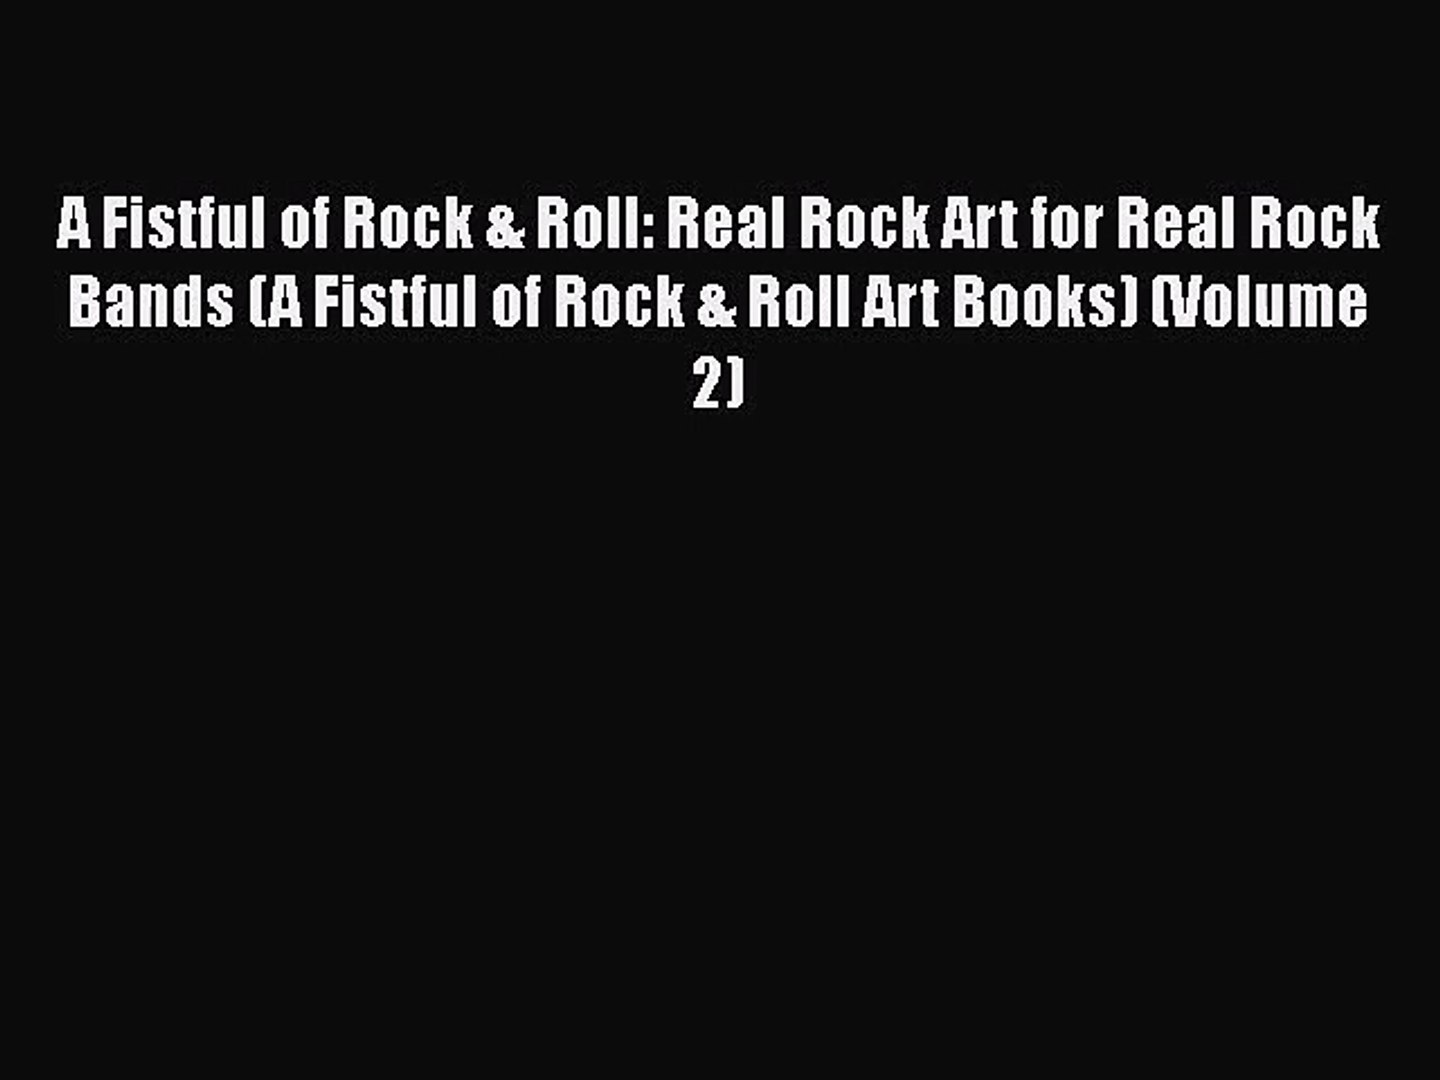 A Fistful of Rock & Roll: Real Rock Art for Real Rock Bands (A Fistful of Rock & Roll Art Bo